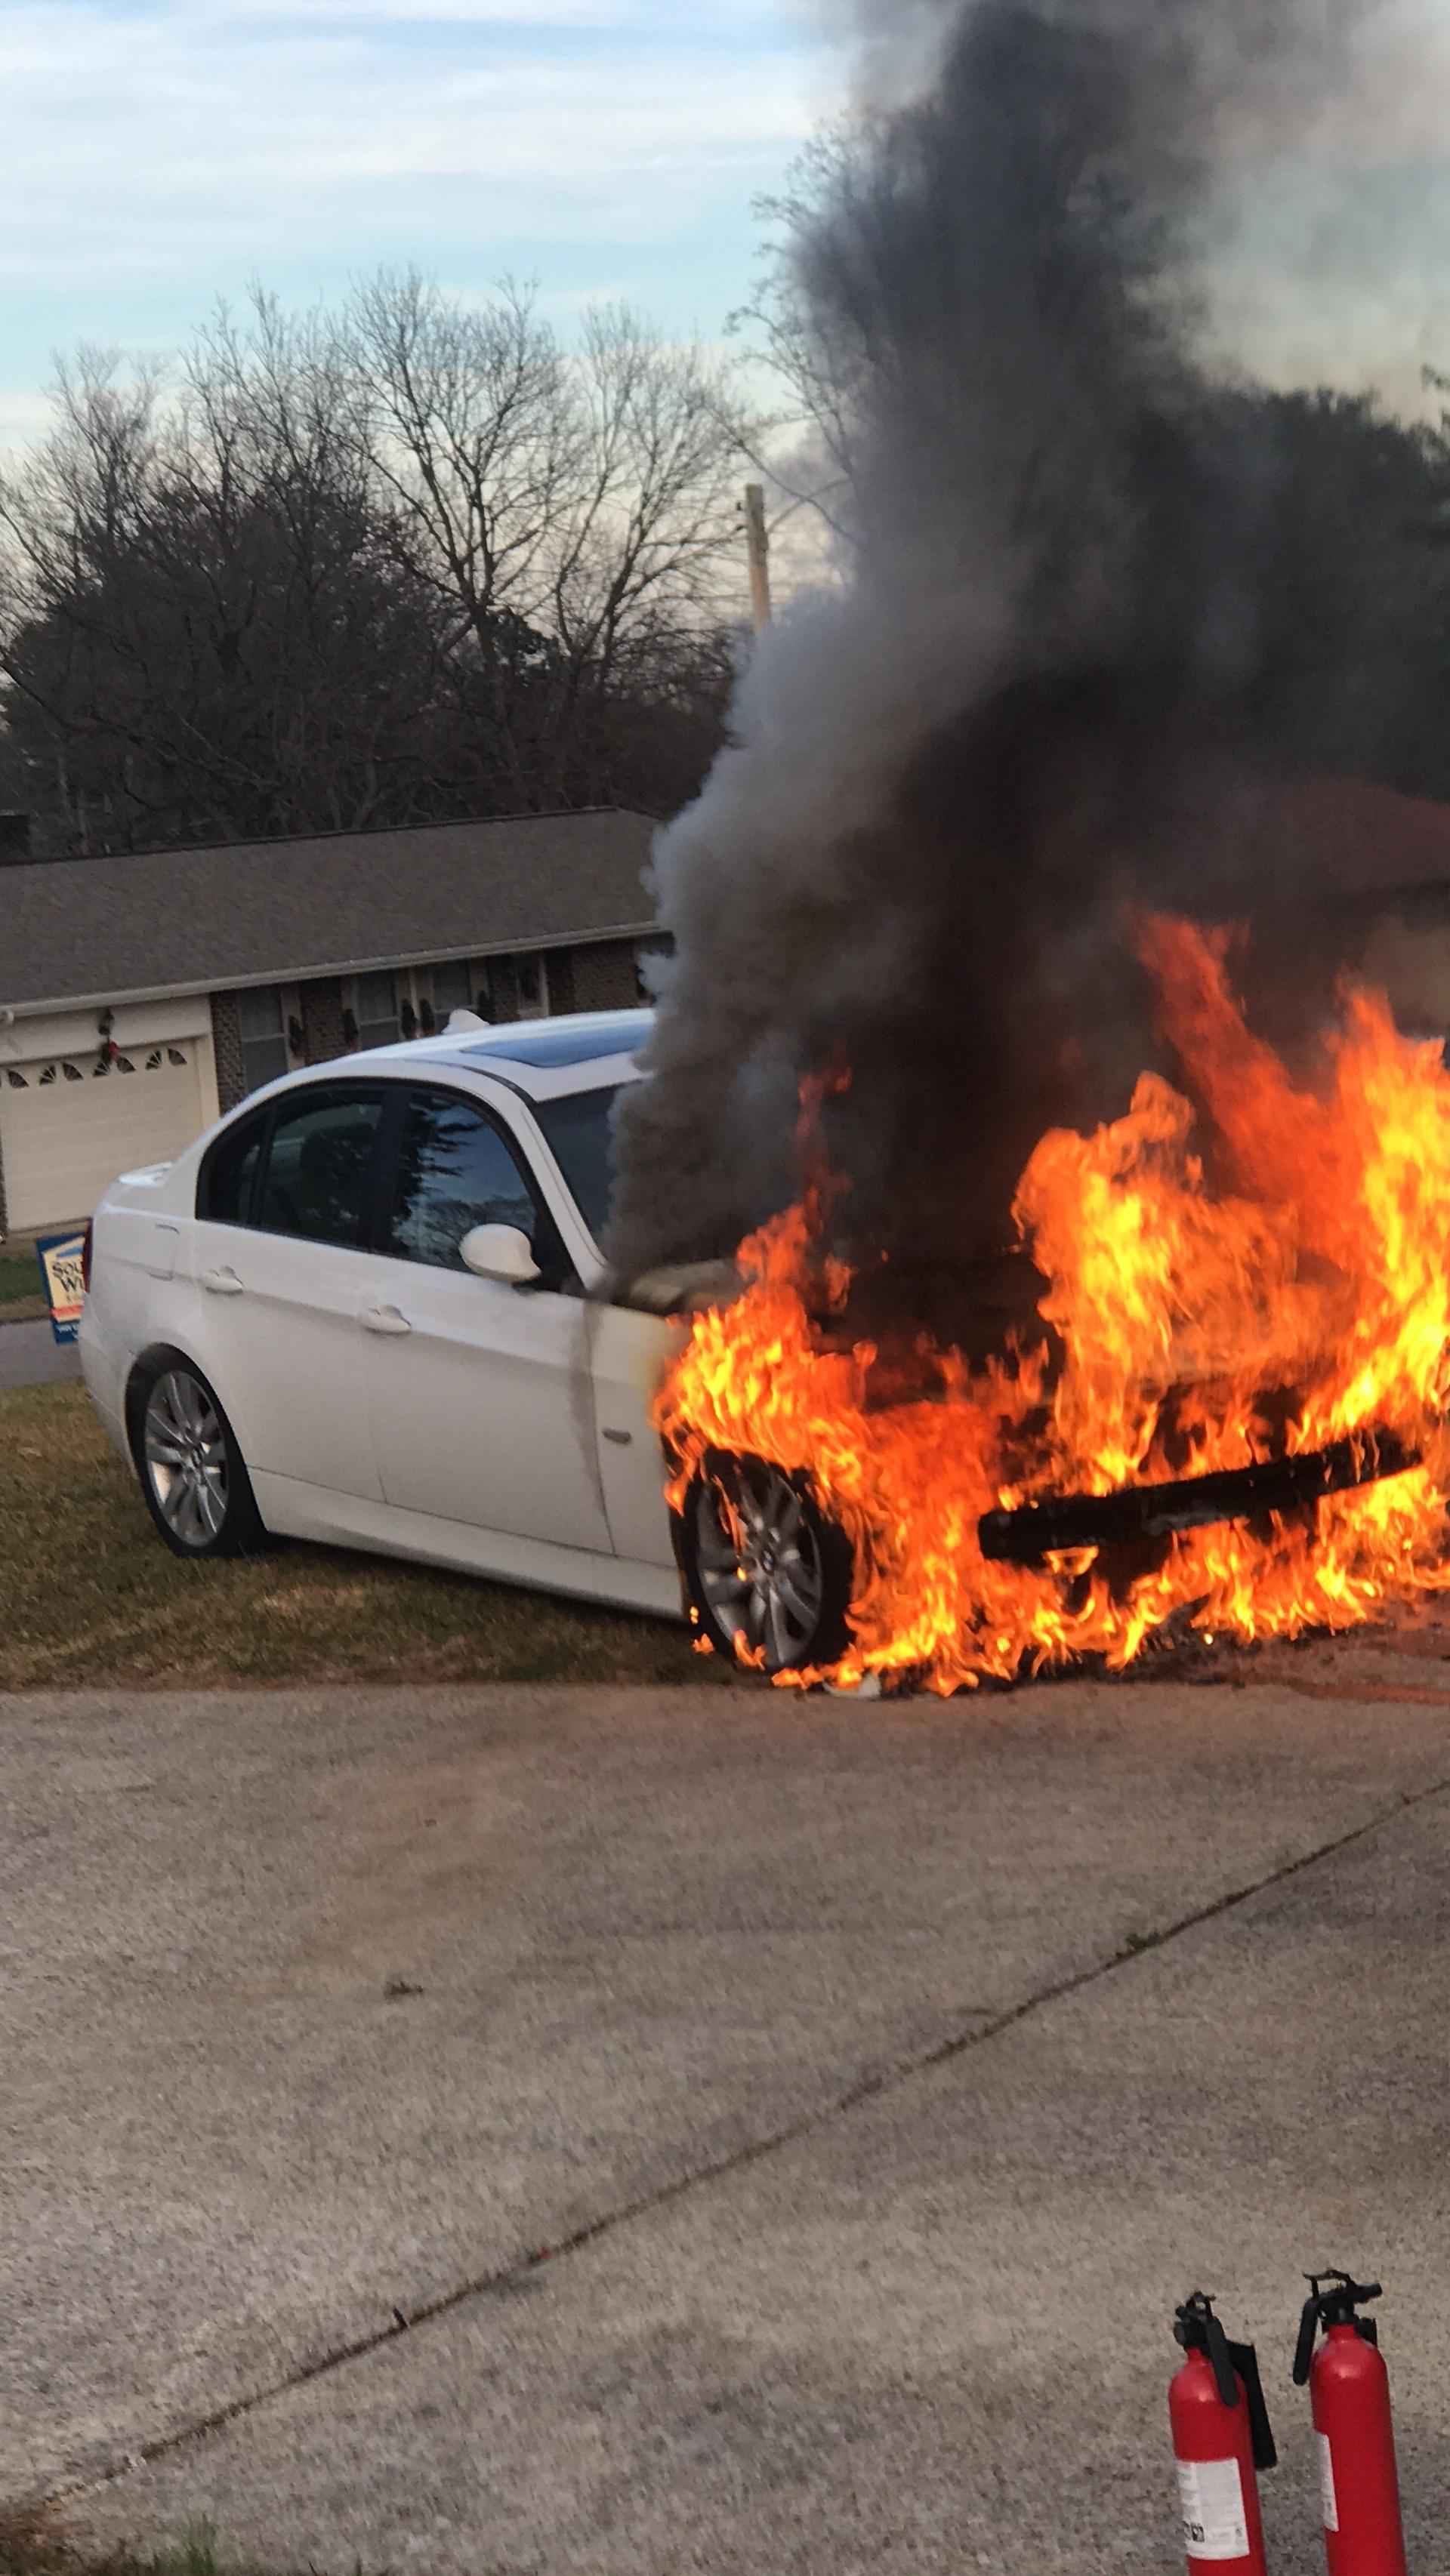 Kevin Muhammad walked out to his garage Sunday afternoon and saw his car on fire. His first instinct? Push it out to the yard. (Image: Kevin Muhammad)